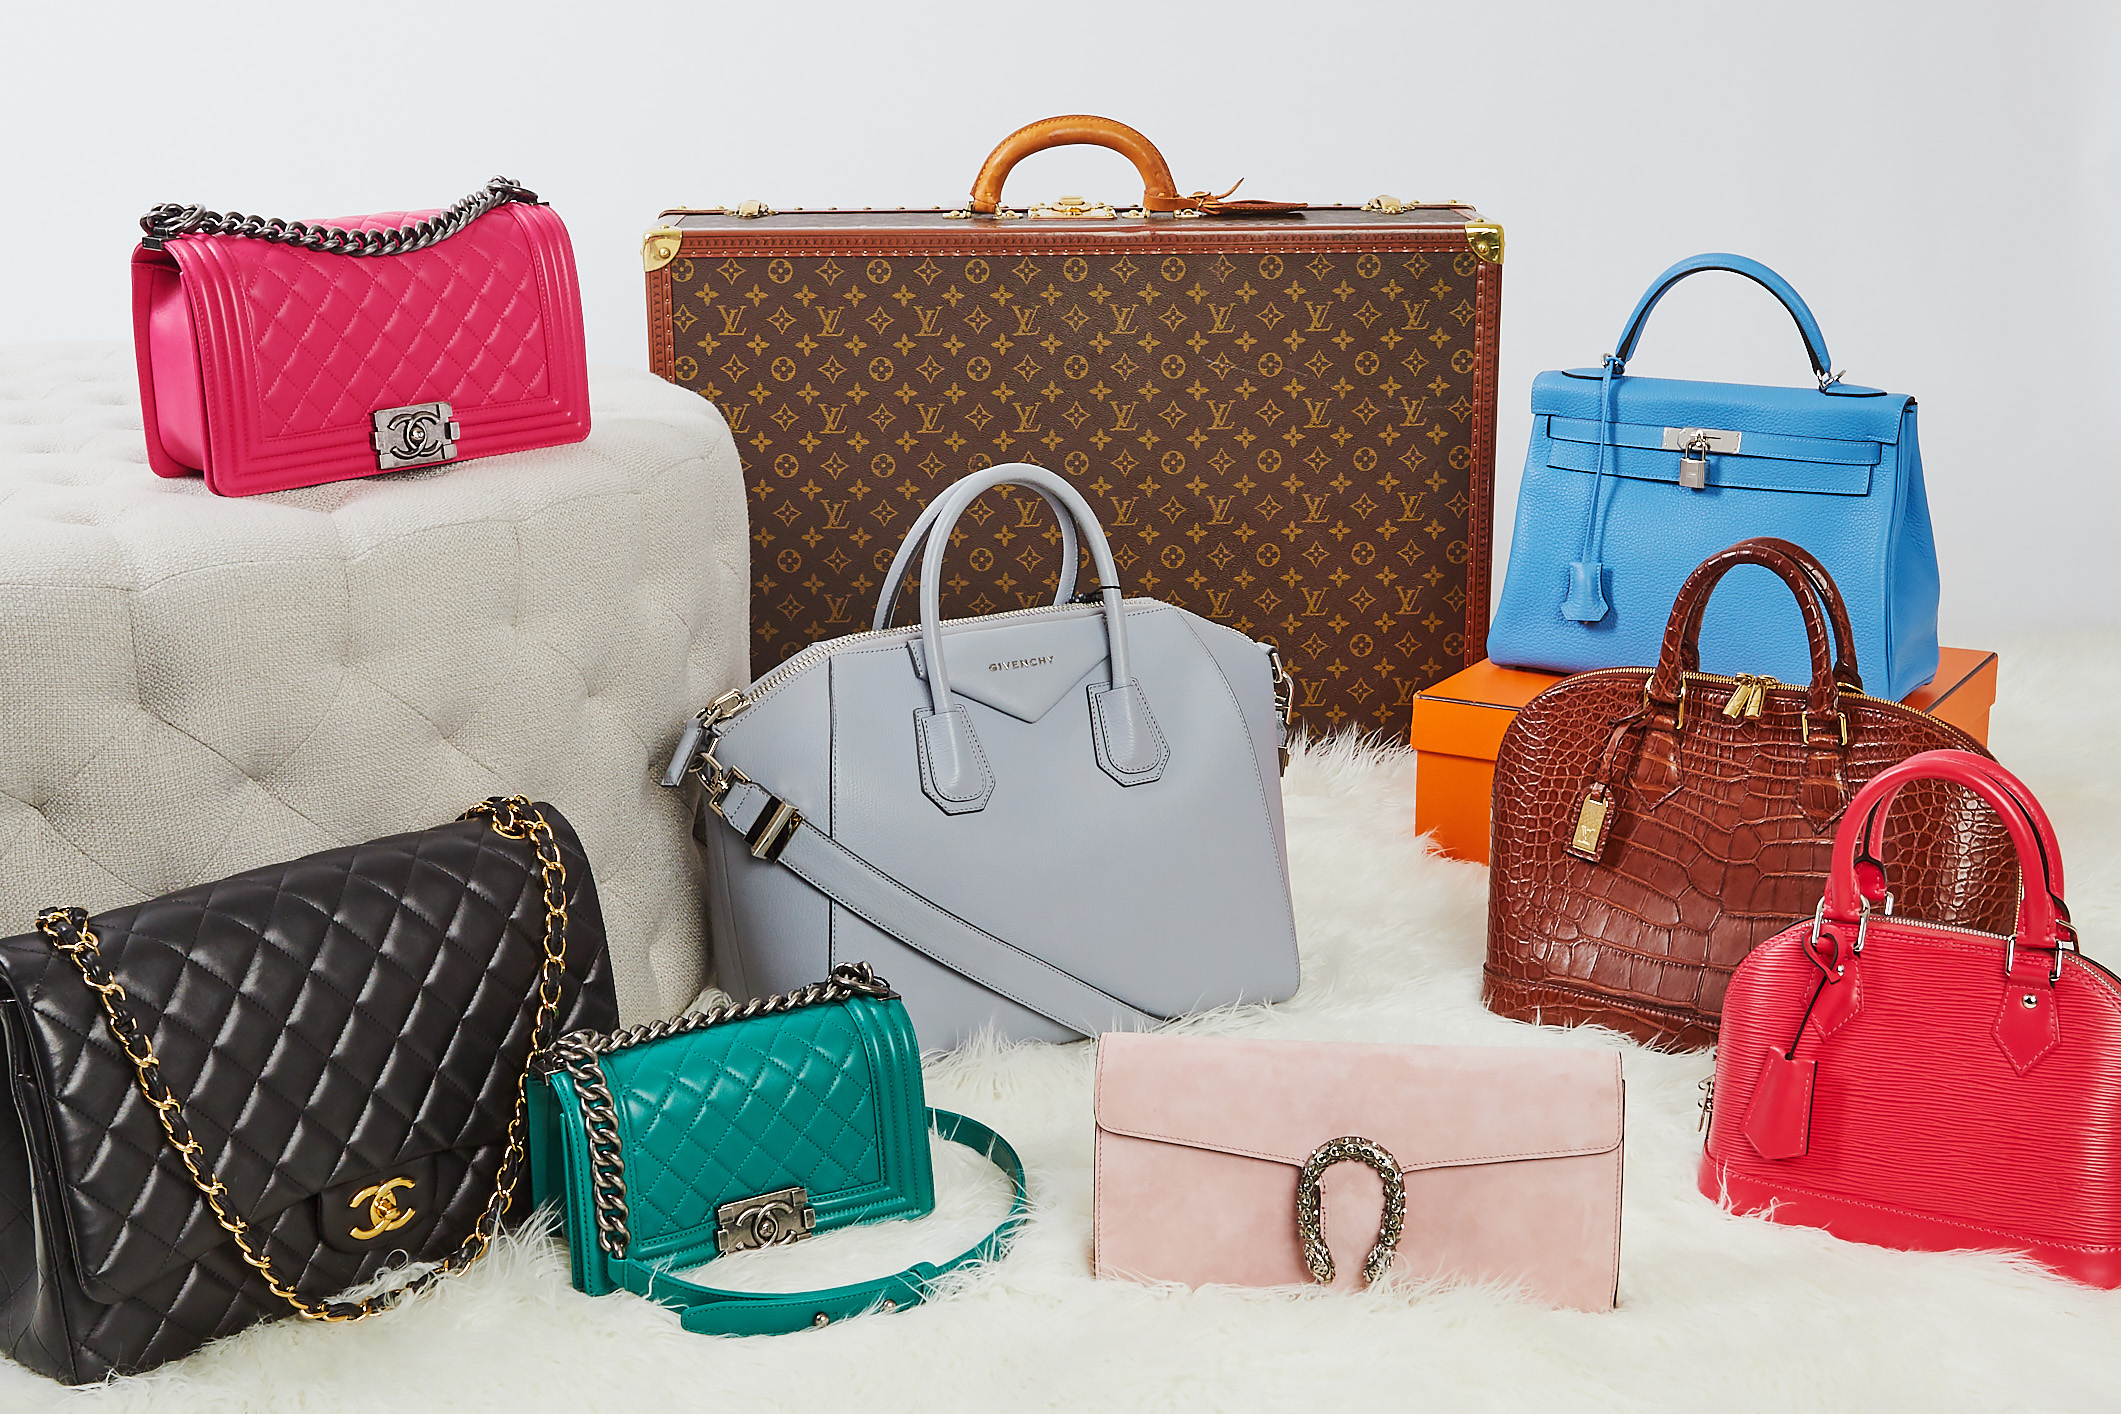 Pre-Owned Chanel, Louis Vuitton, Hermes, Givenchy and Gucci | Authenticated Pre-Owned Luxury at YoogisCloset.com